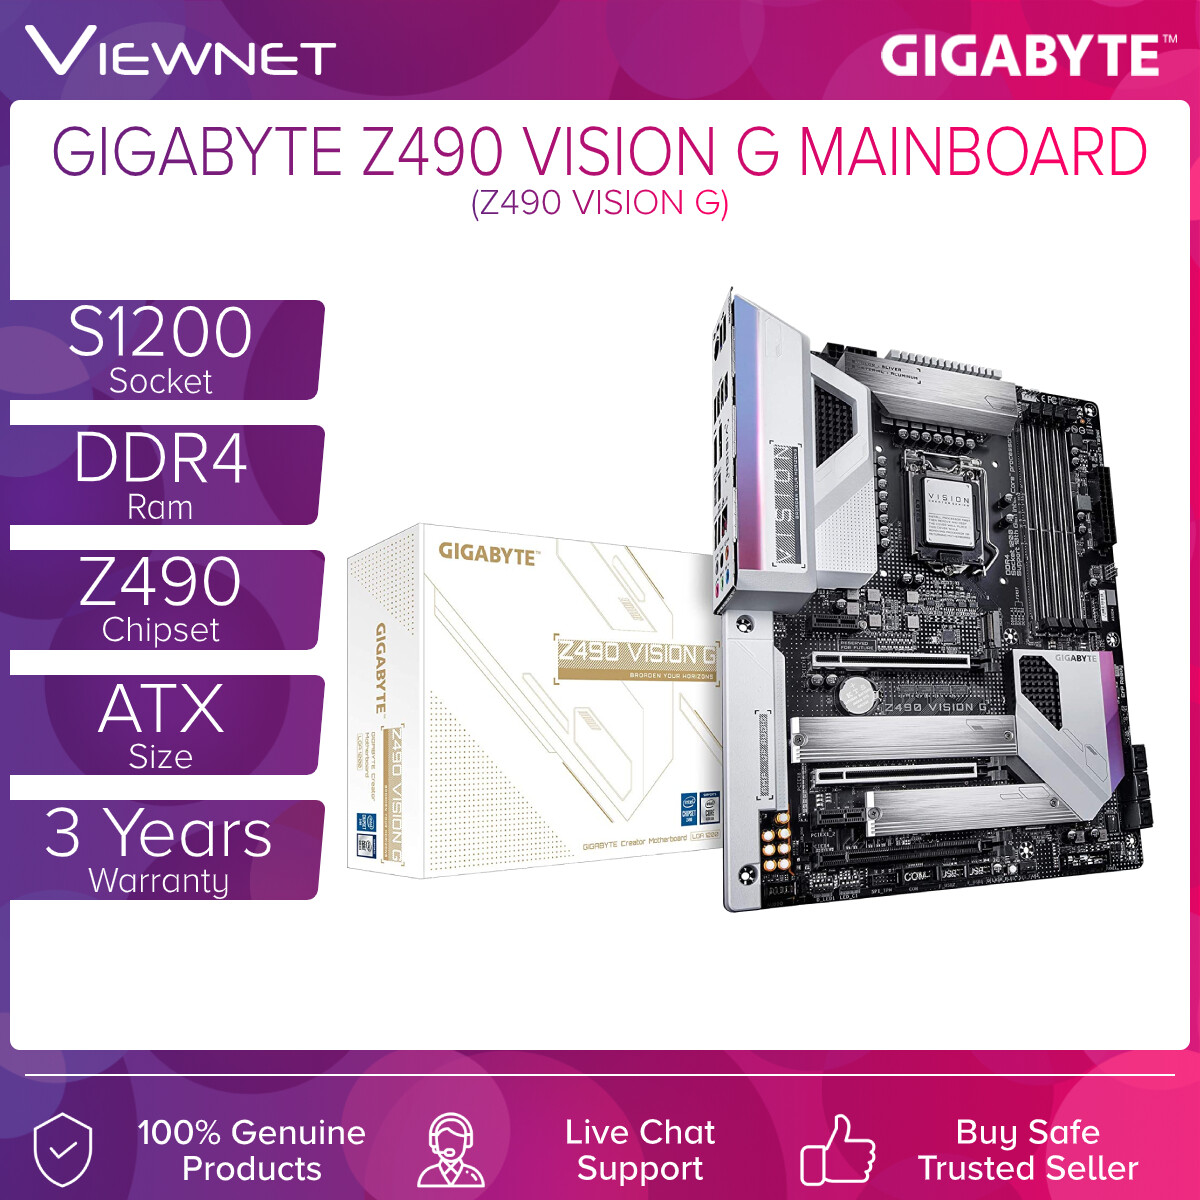 Gigabyte Z490 VISION G Mainboard, Direct 12+1 Phases Power Design, Direct Touch Heatpipe II /w Micro-Block Heatsink, Intel® 2.5GbE with cFosSpeed, 2-Way SLI™ / CrossFire™ Multi-Graphics, Dual M.2 with Thermal Guards, Front & Rear USB 3.2 Gen2 Type-C